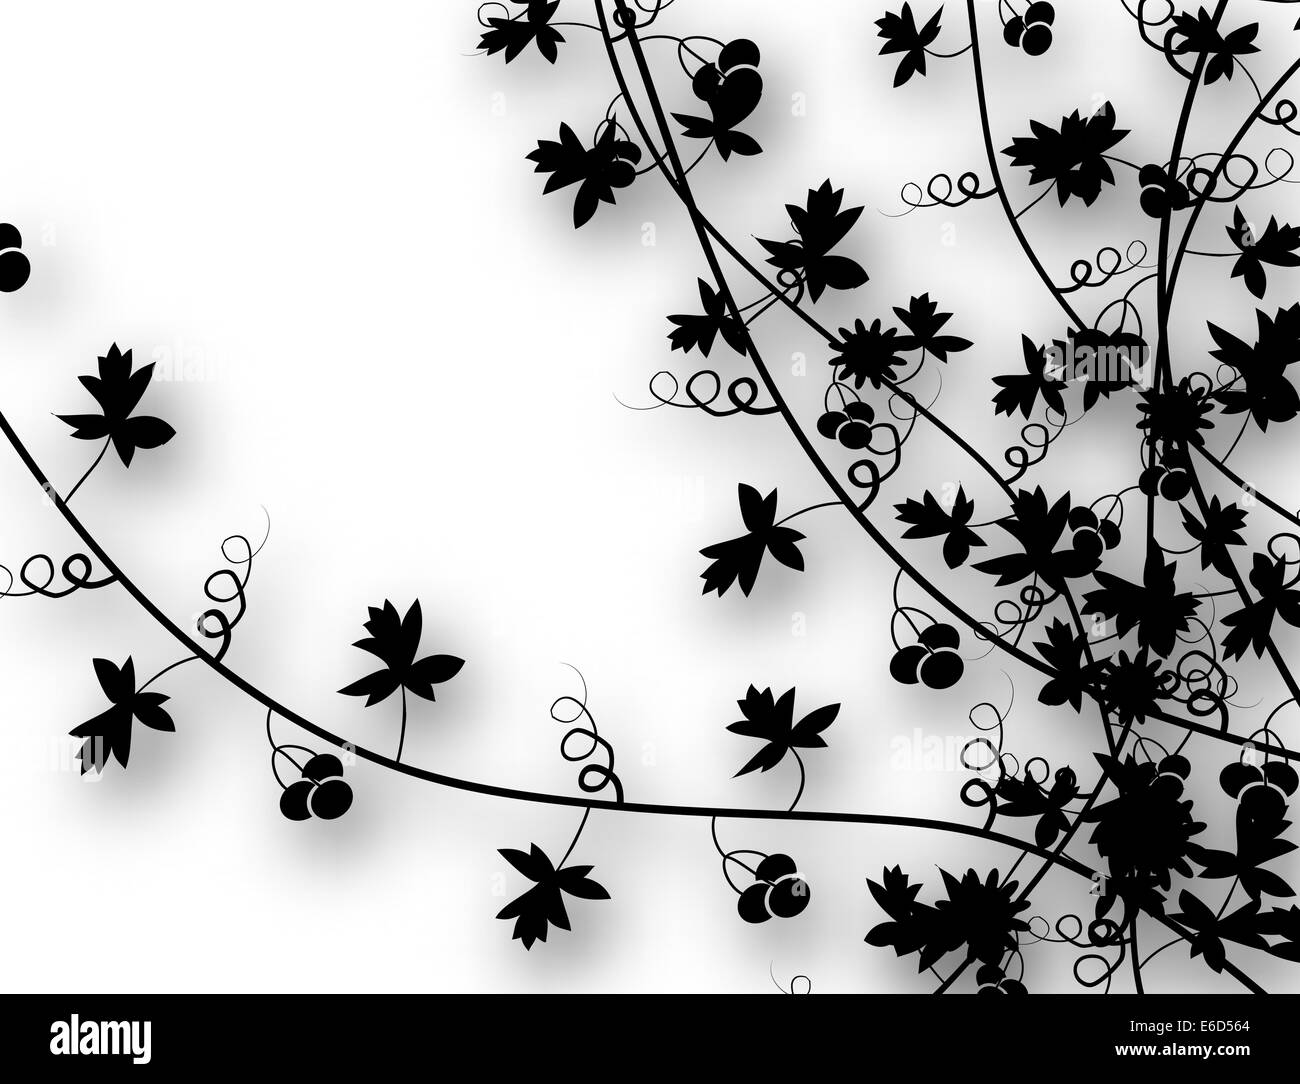 Editable vector illustration of vines with background shadow made using a gradient mesh - Stock Image